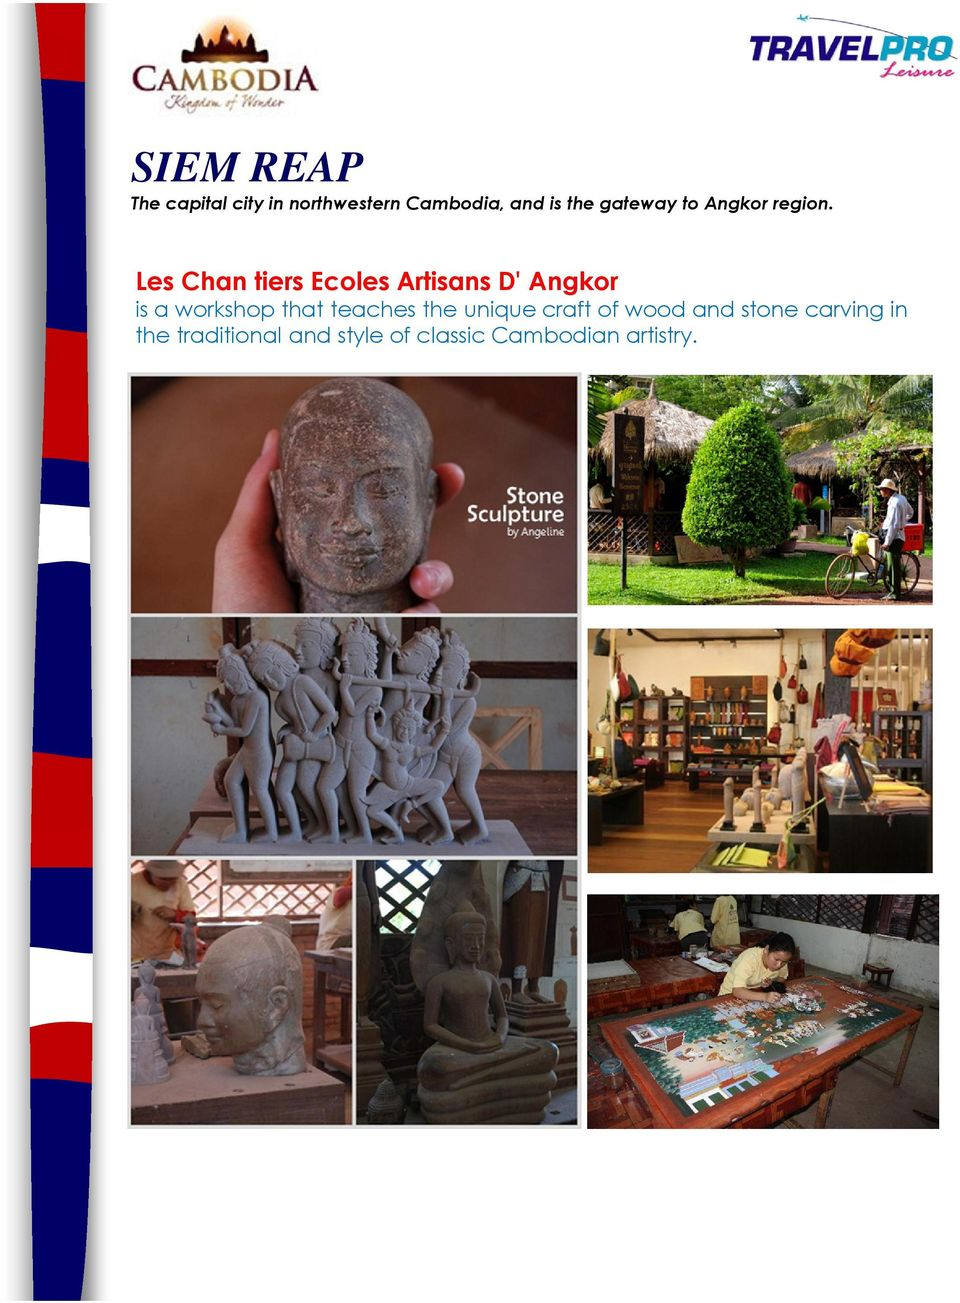 Les Chan tiers Ecoles Artisans D' Angkor is a workshop that